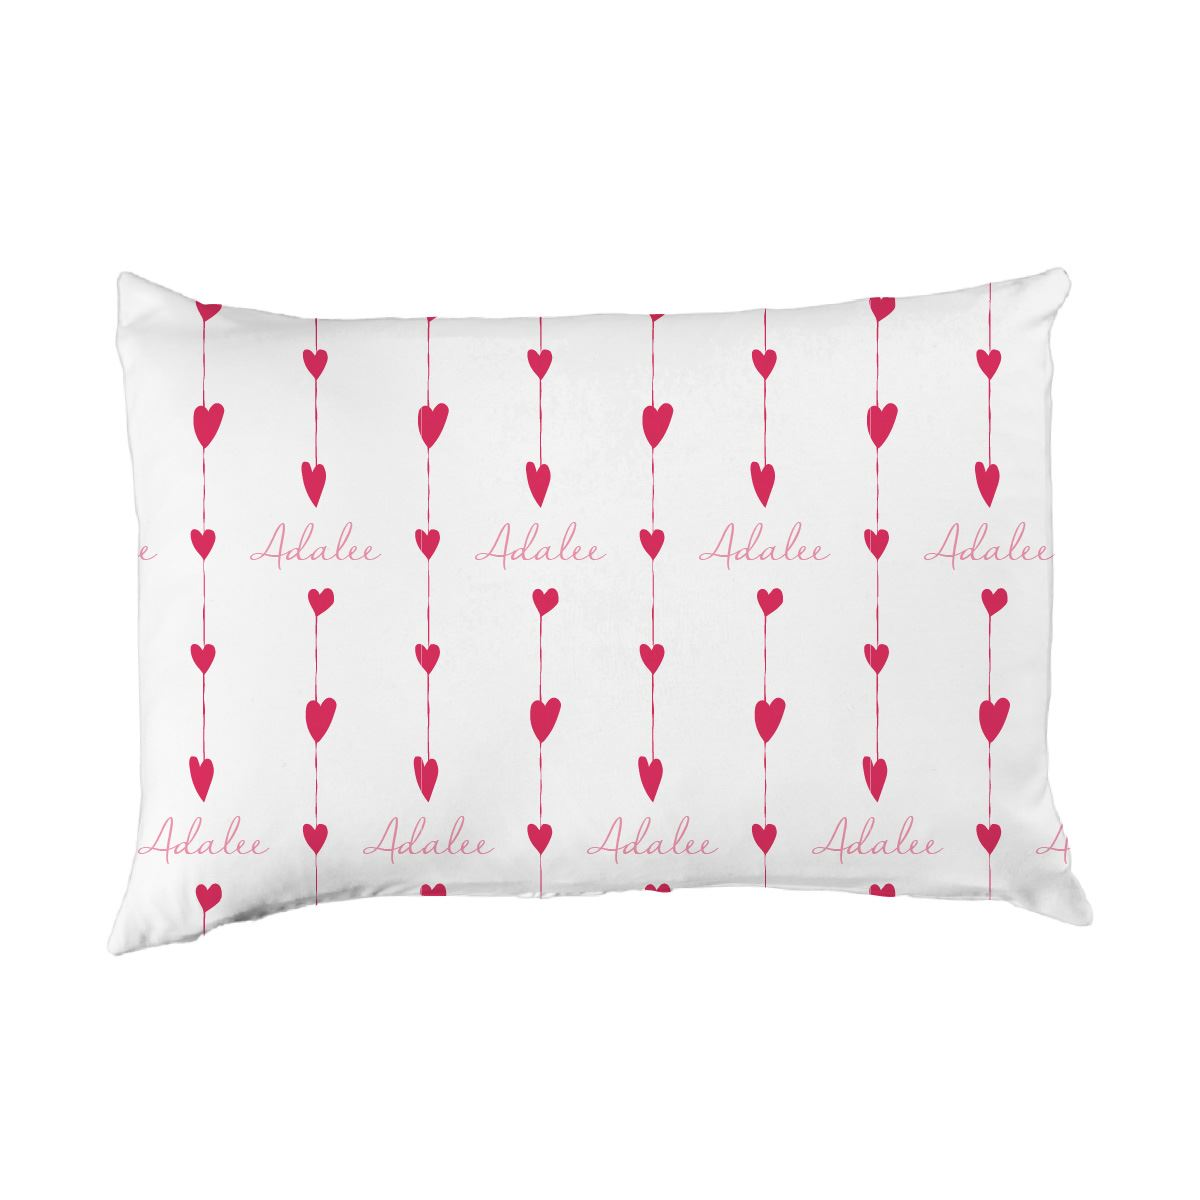 Adalee's Valentine Hearts | Big Kid Pillow Case